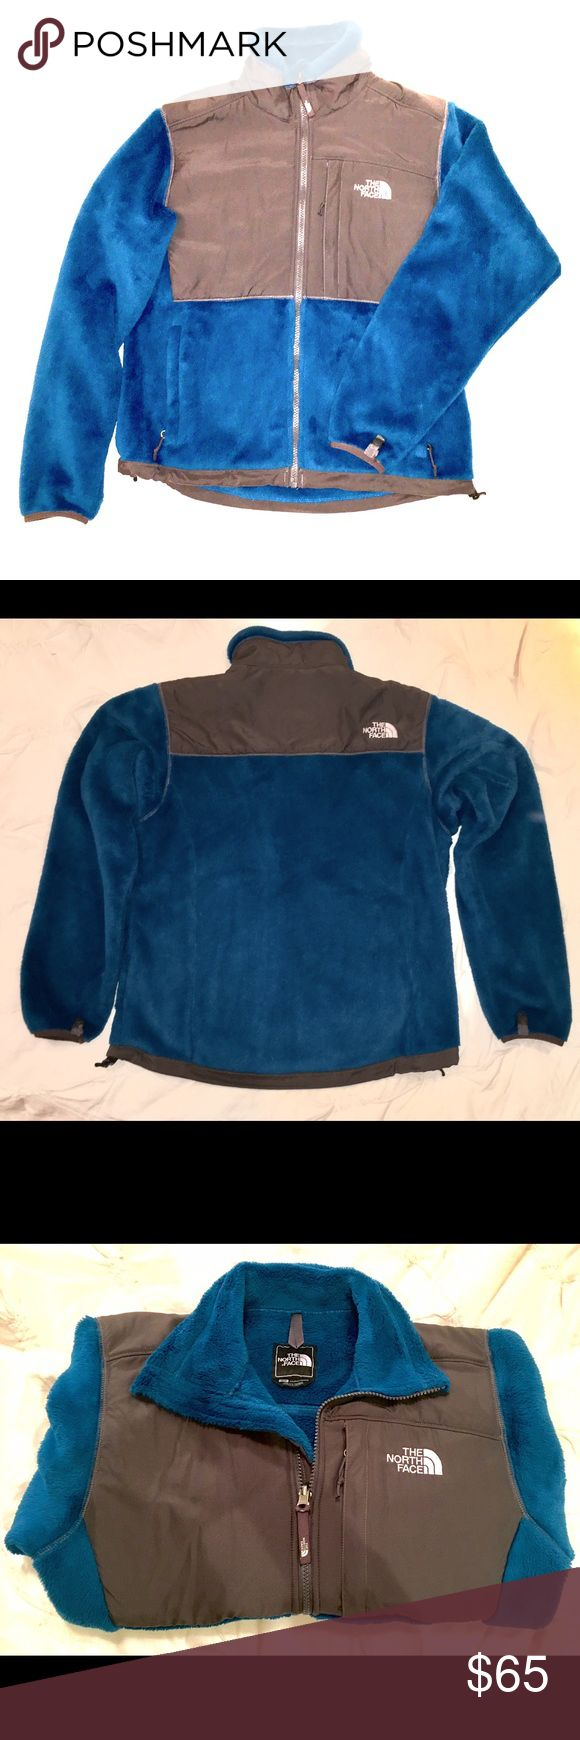 Women's North Face Denali Jacket Navy blue and grey zip up jacket. Worn a few times but looks brand new! The North Face Jackets & Coats